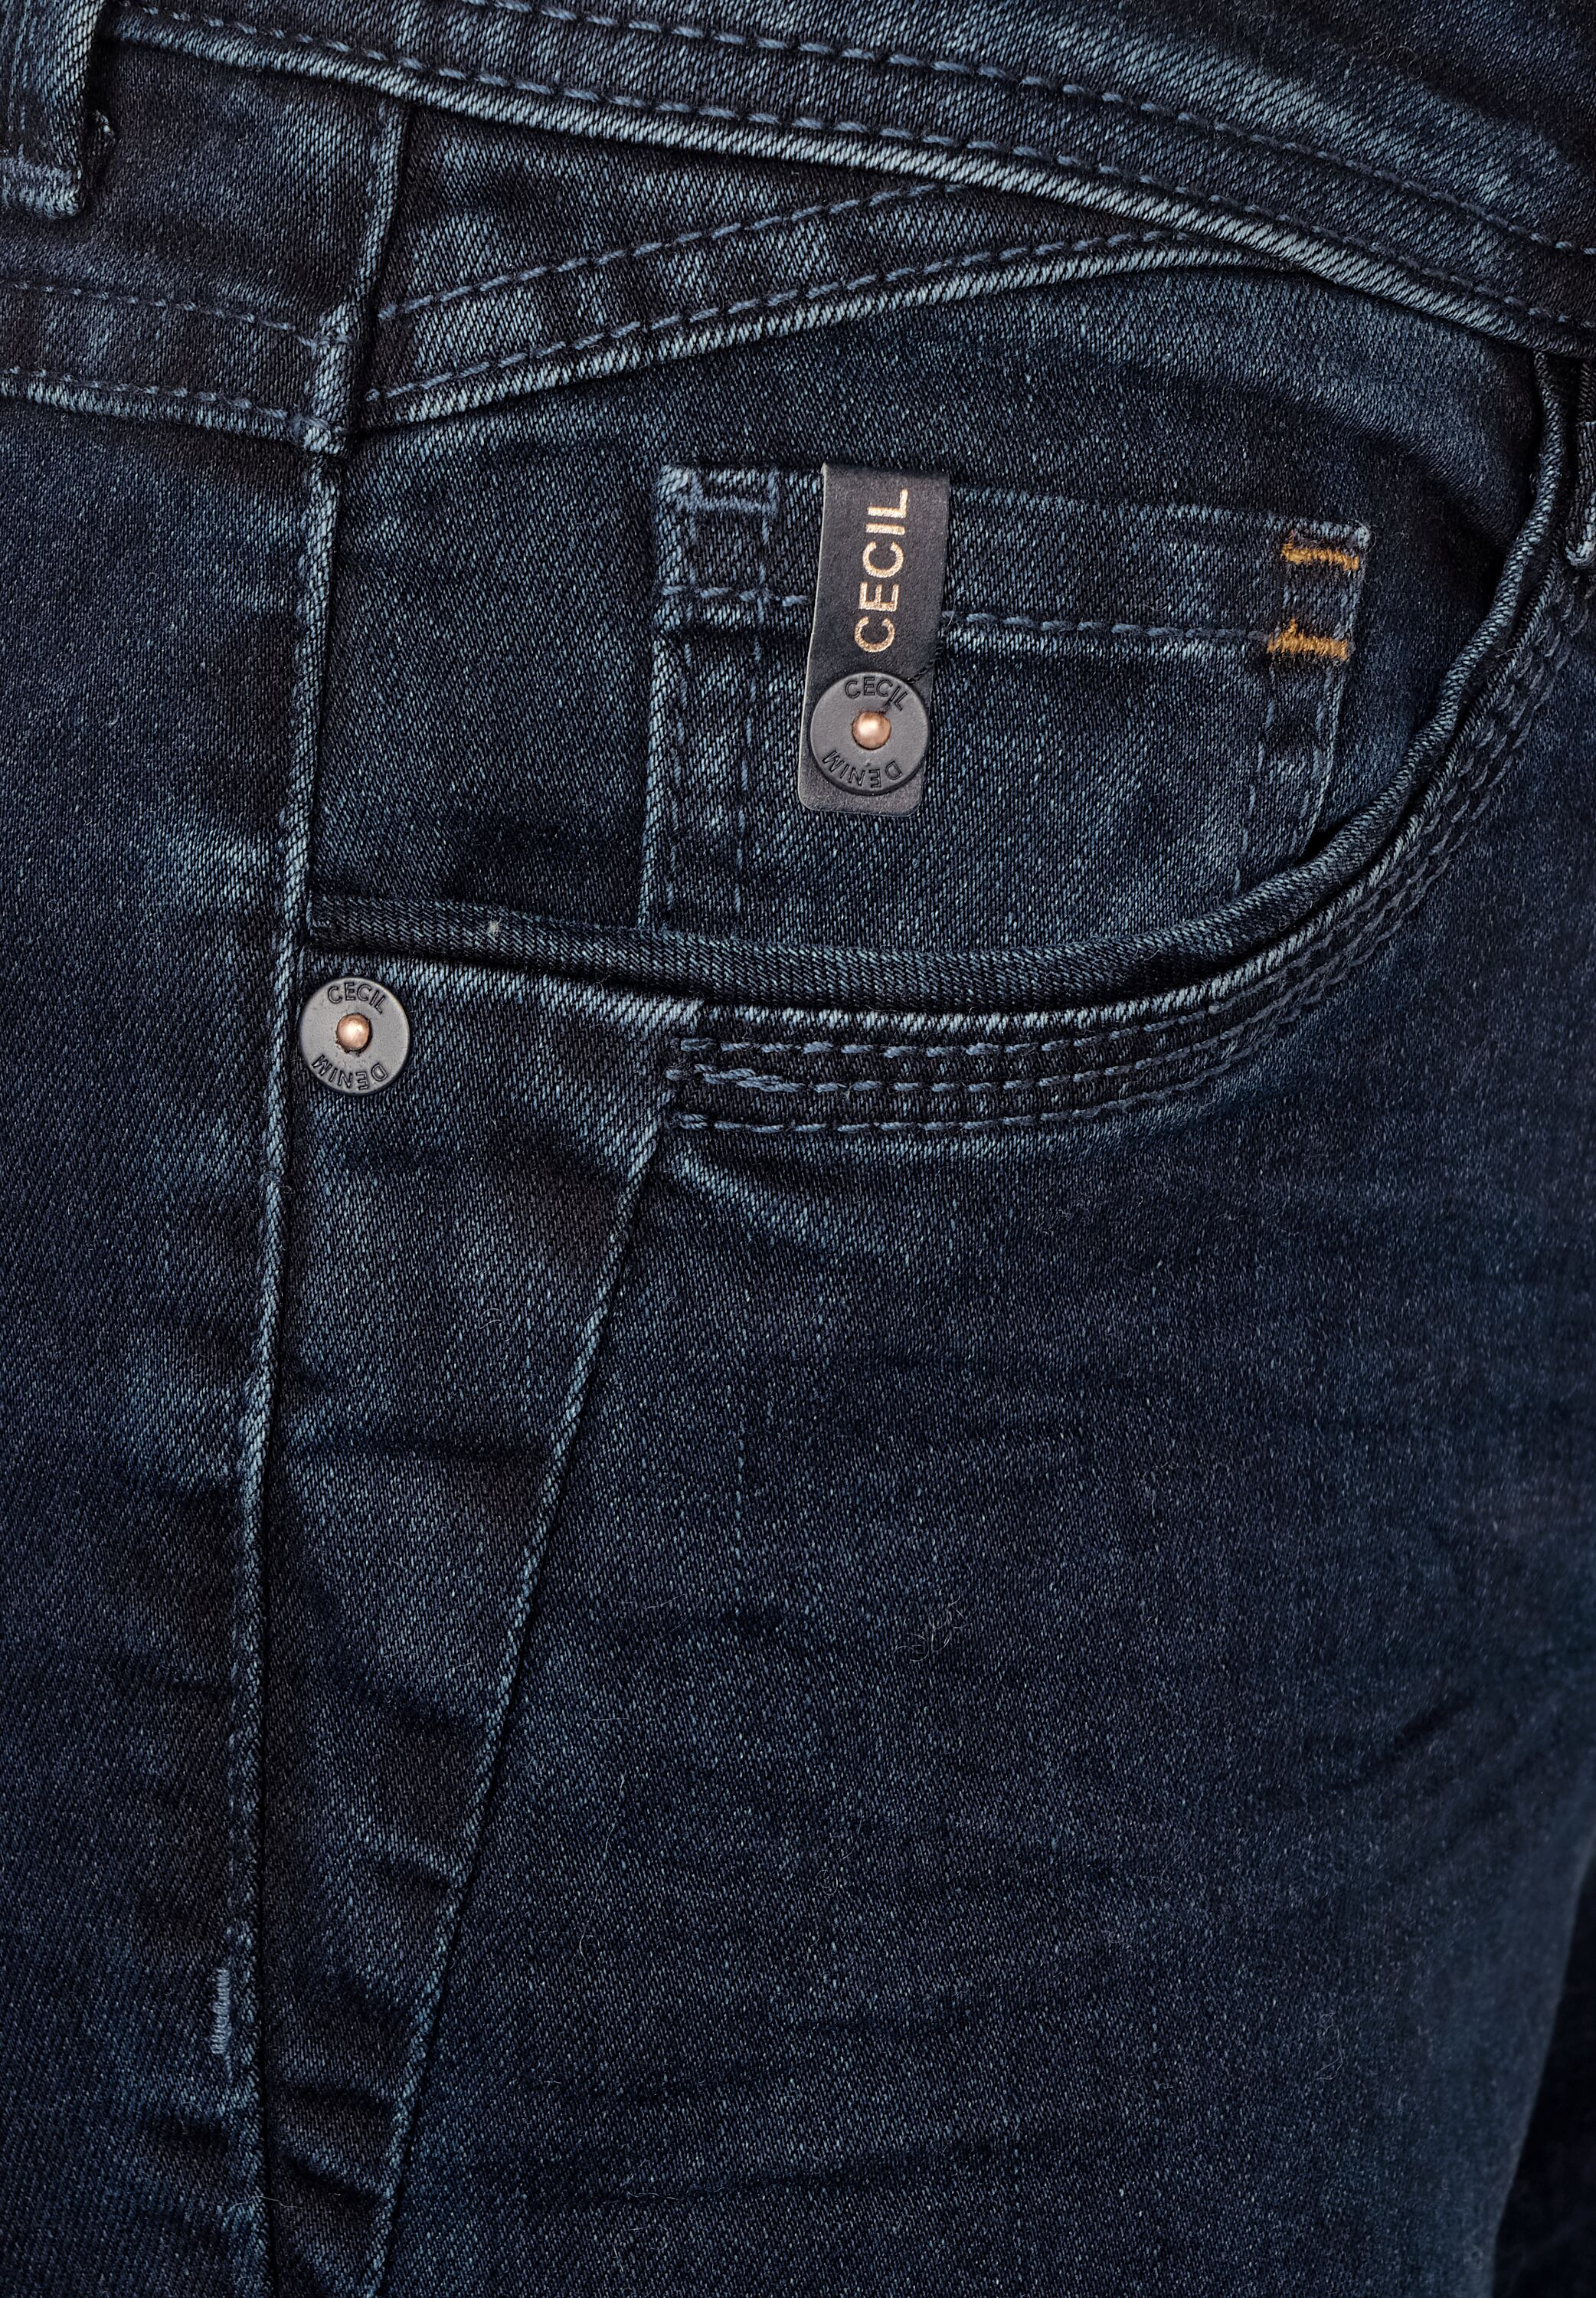 CECIL Jeans in dunkelblau 48f4j3nY